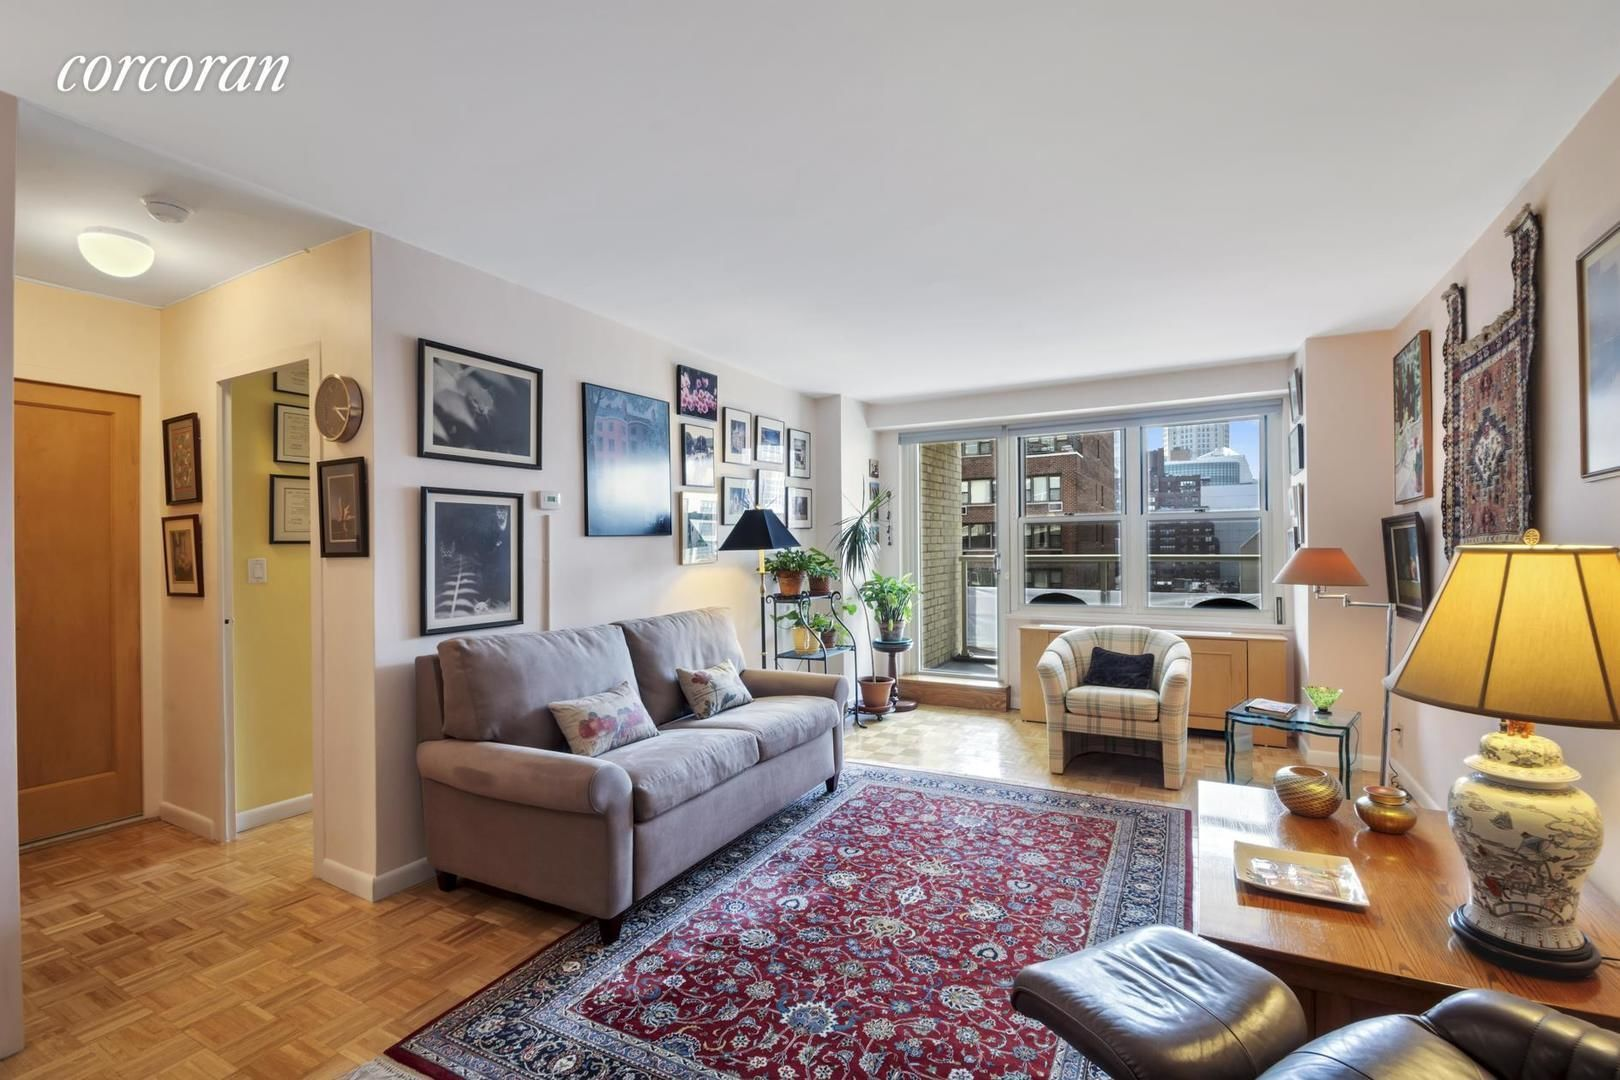 Apartment for sale at 305 East 24th Street, Apt 14A